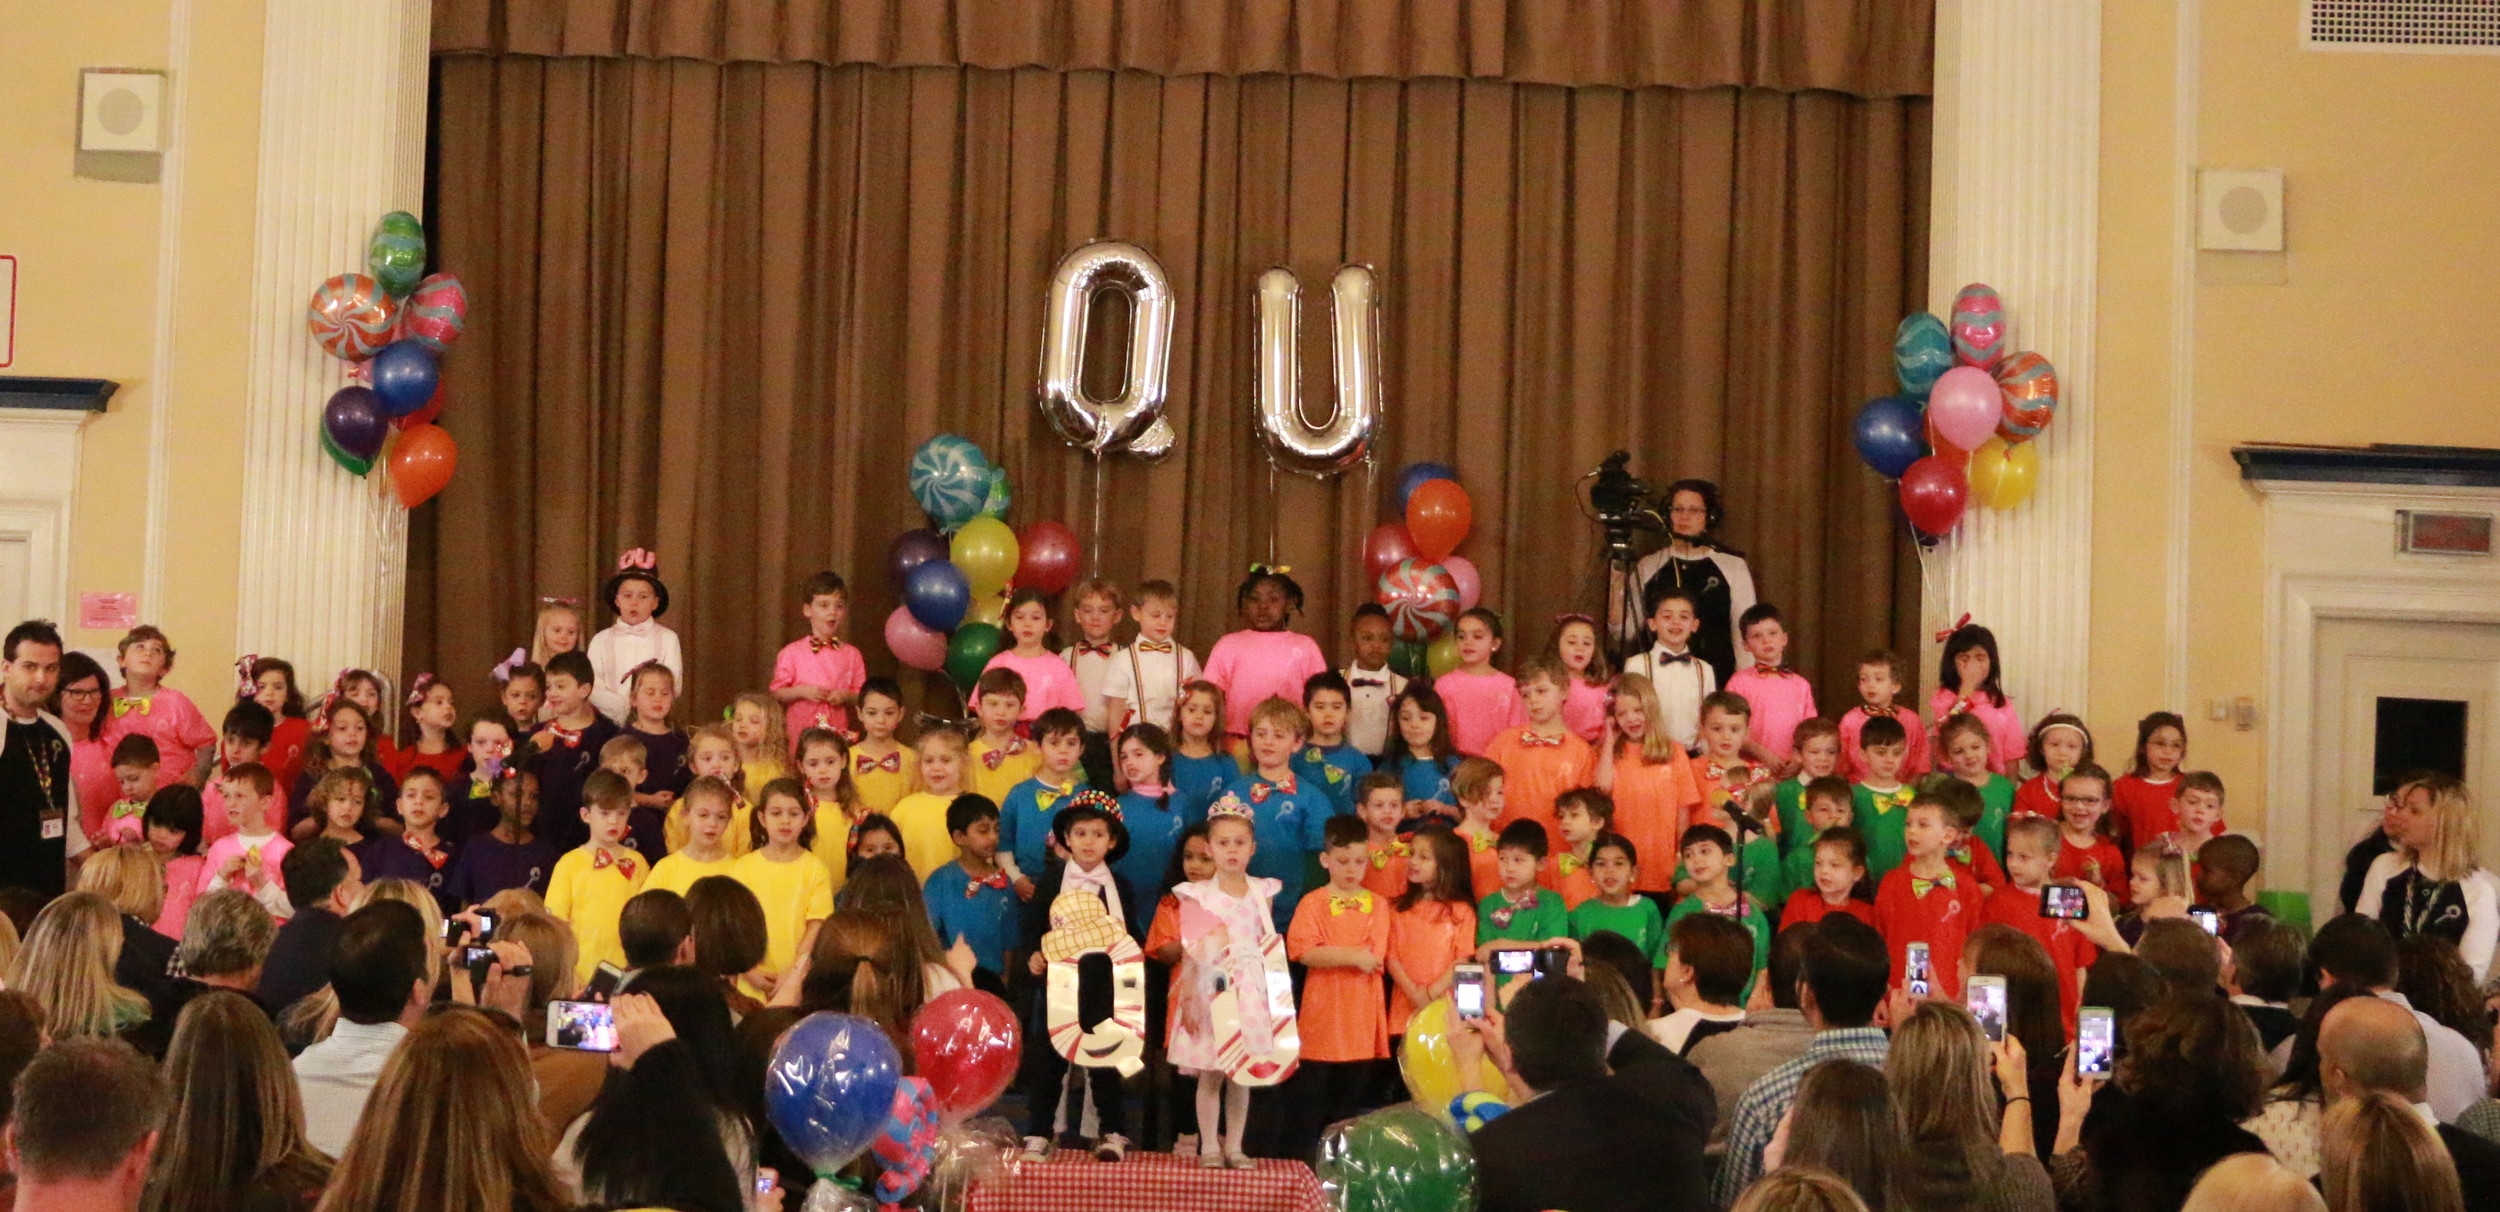 The entire kindergarten class at Jennie E. Hewitt Elementary School gathered in the auditorium for the Q and U wedding on Feb. 17.